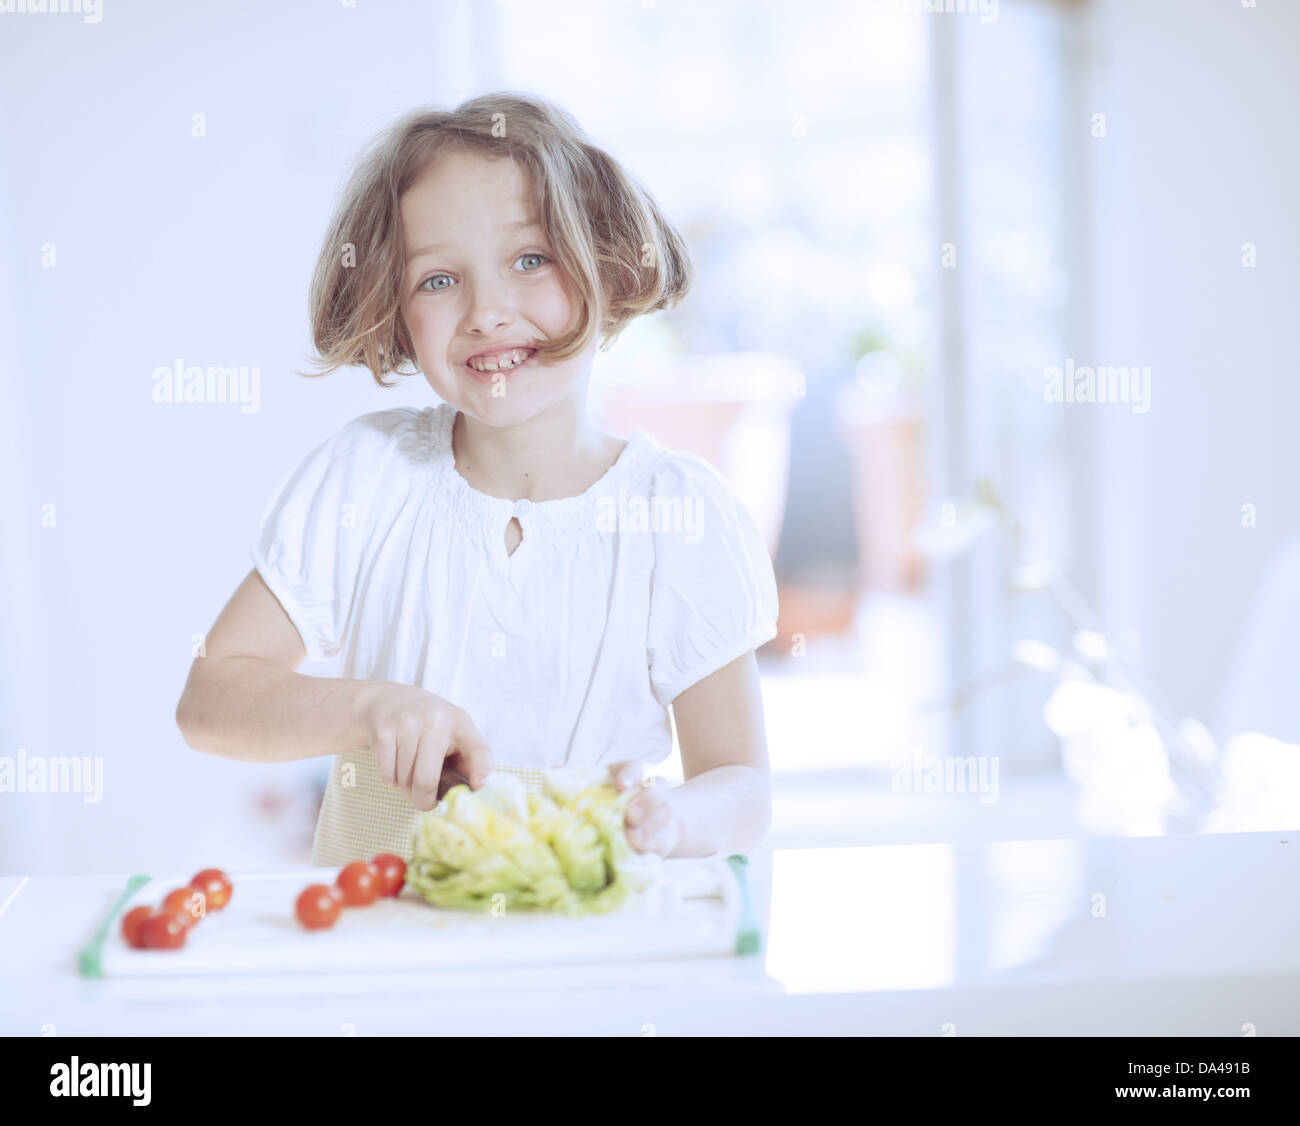 Young girl making a salad - Stock Image